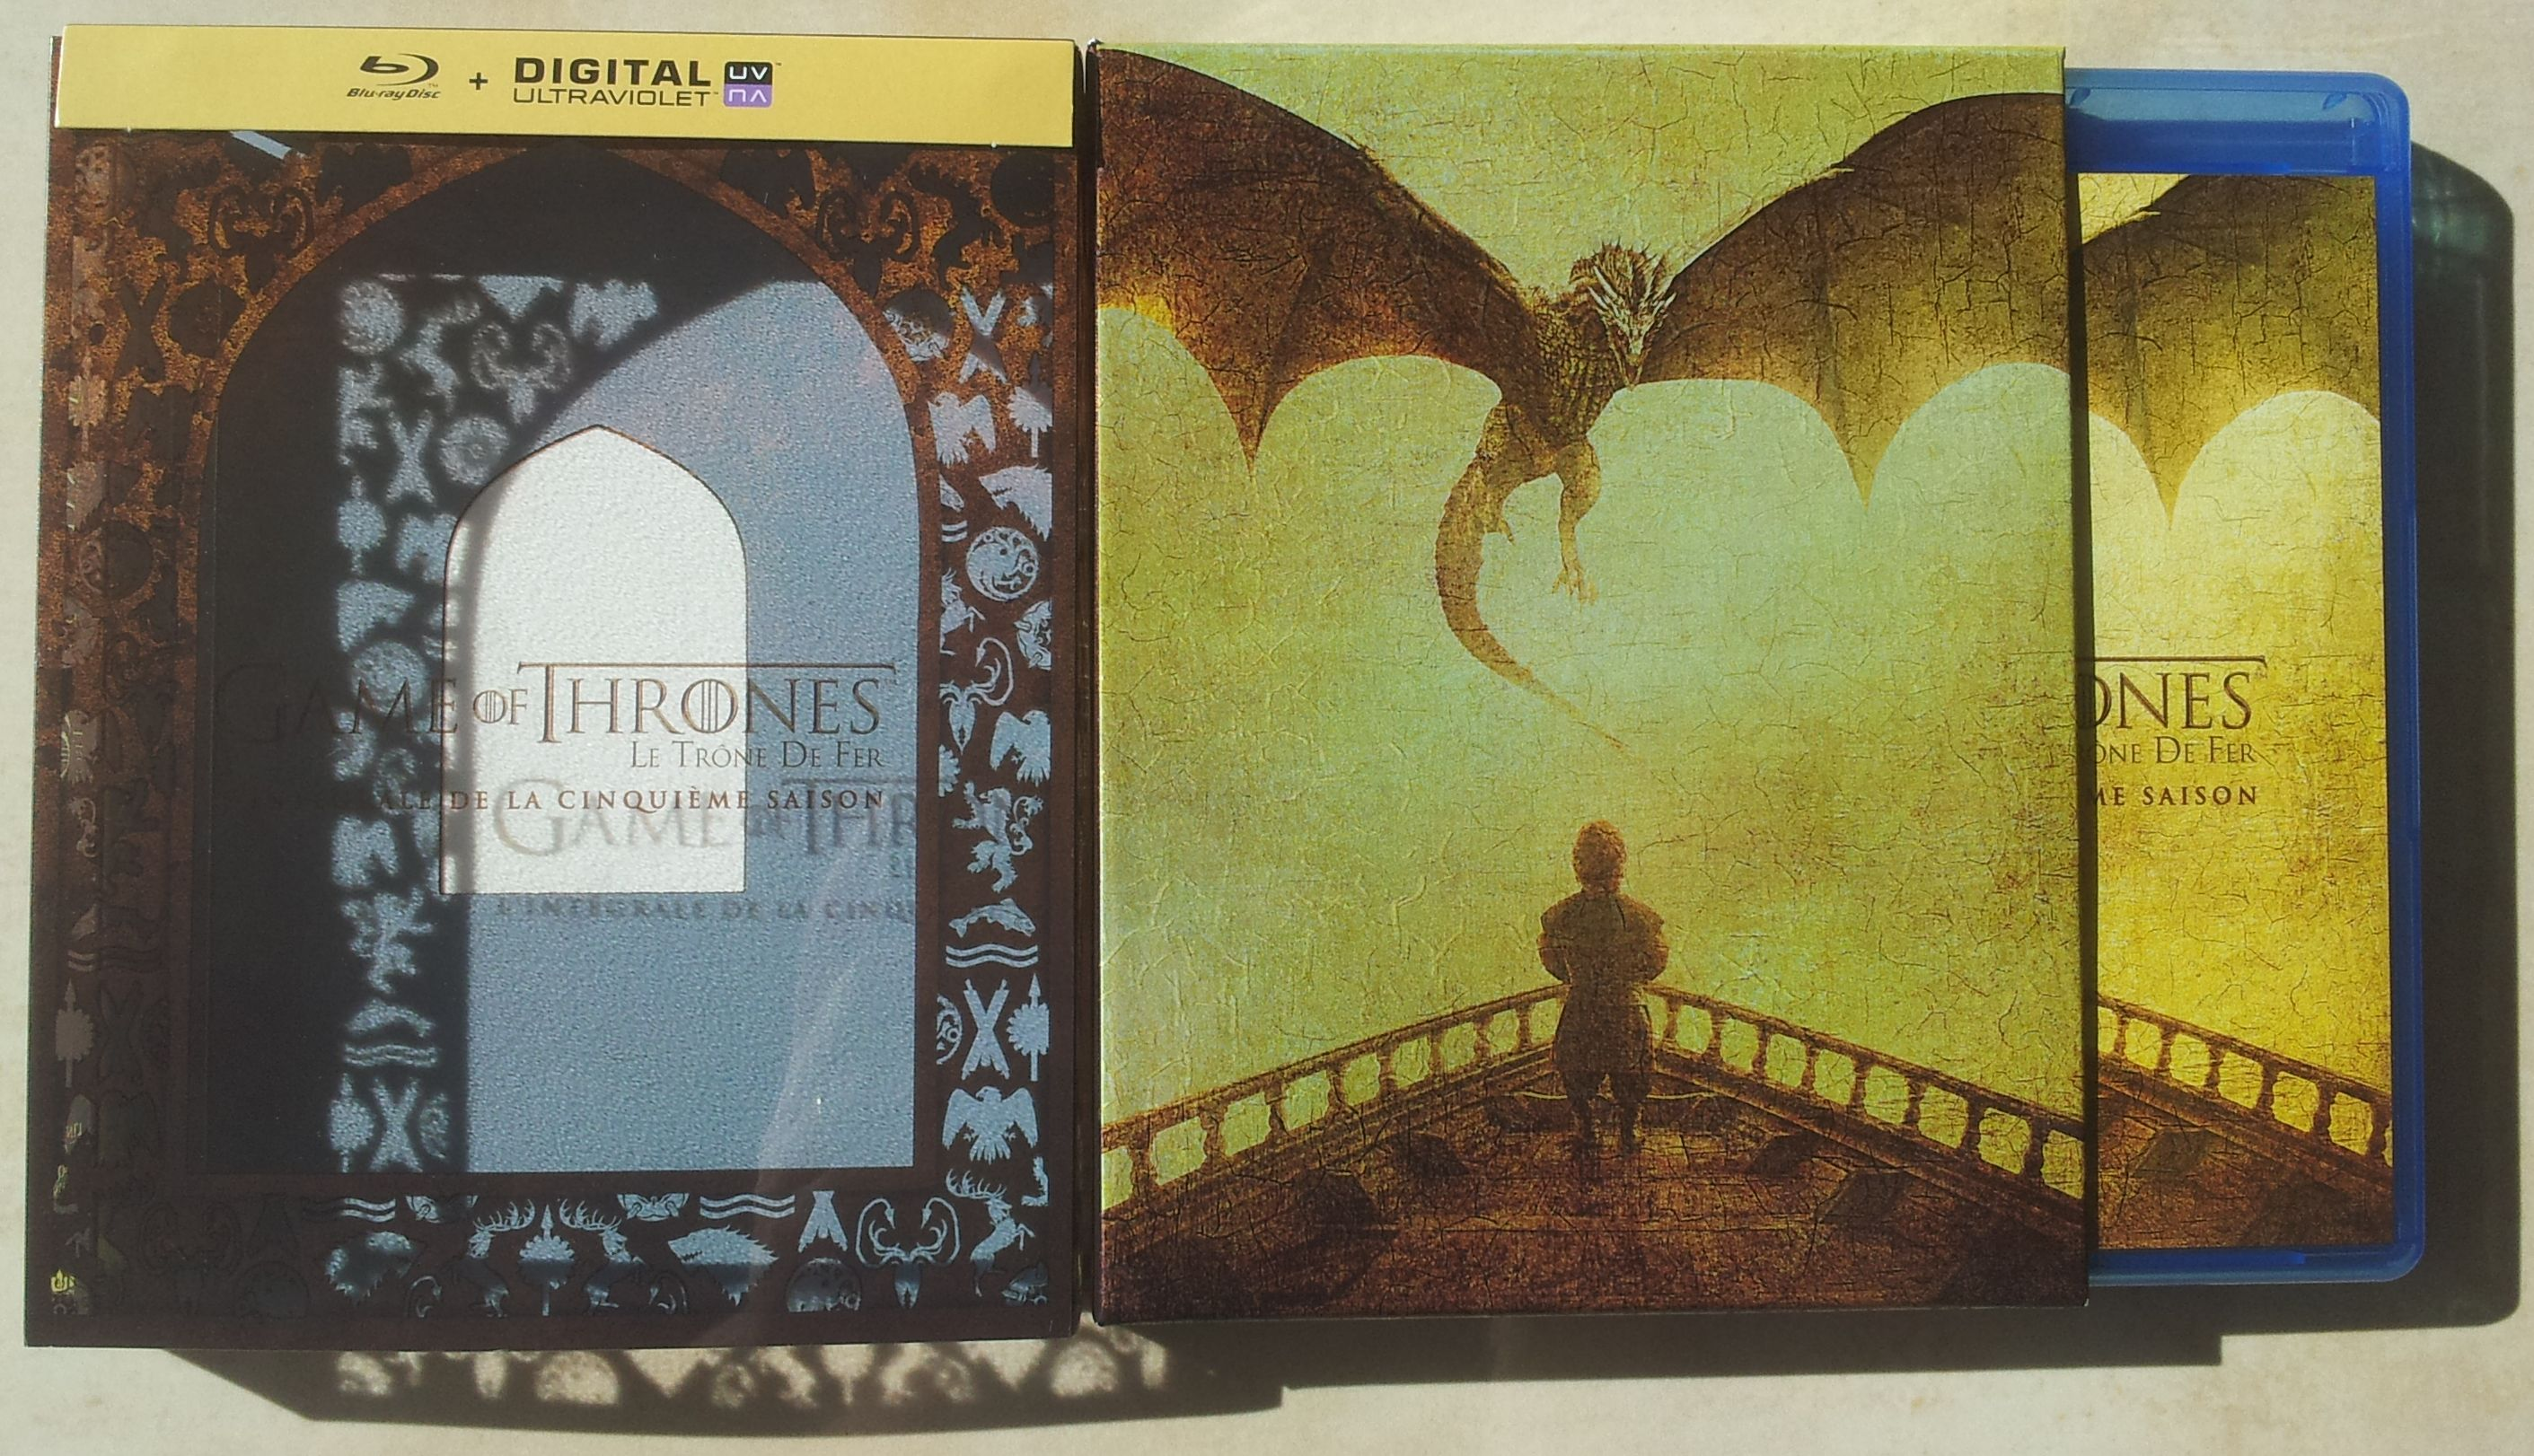 blu-ray game of thrones saison 5 packaging